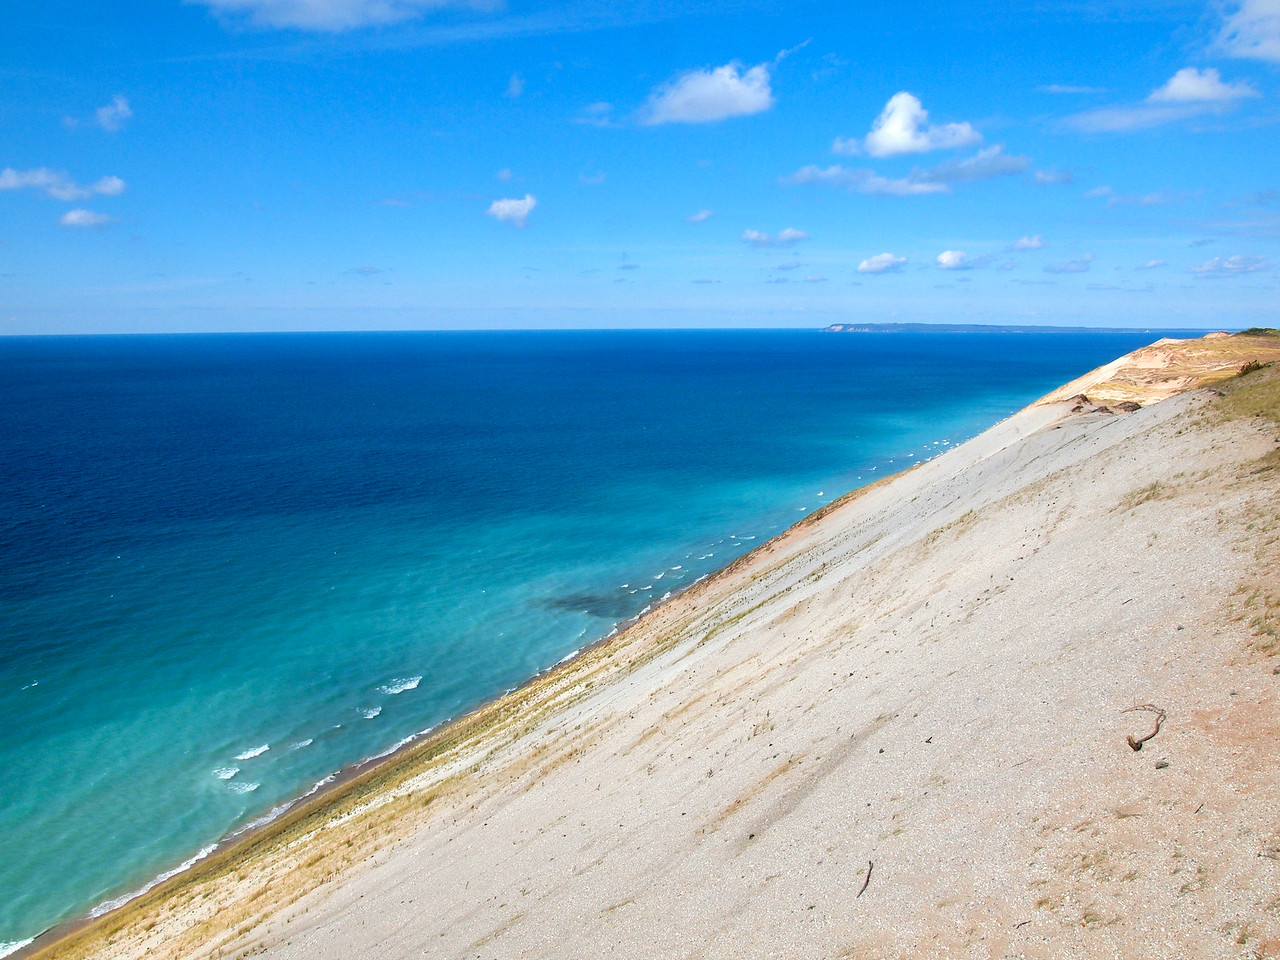 Lake Michigan at Sleeping Bear Dunes